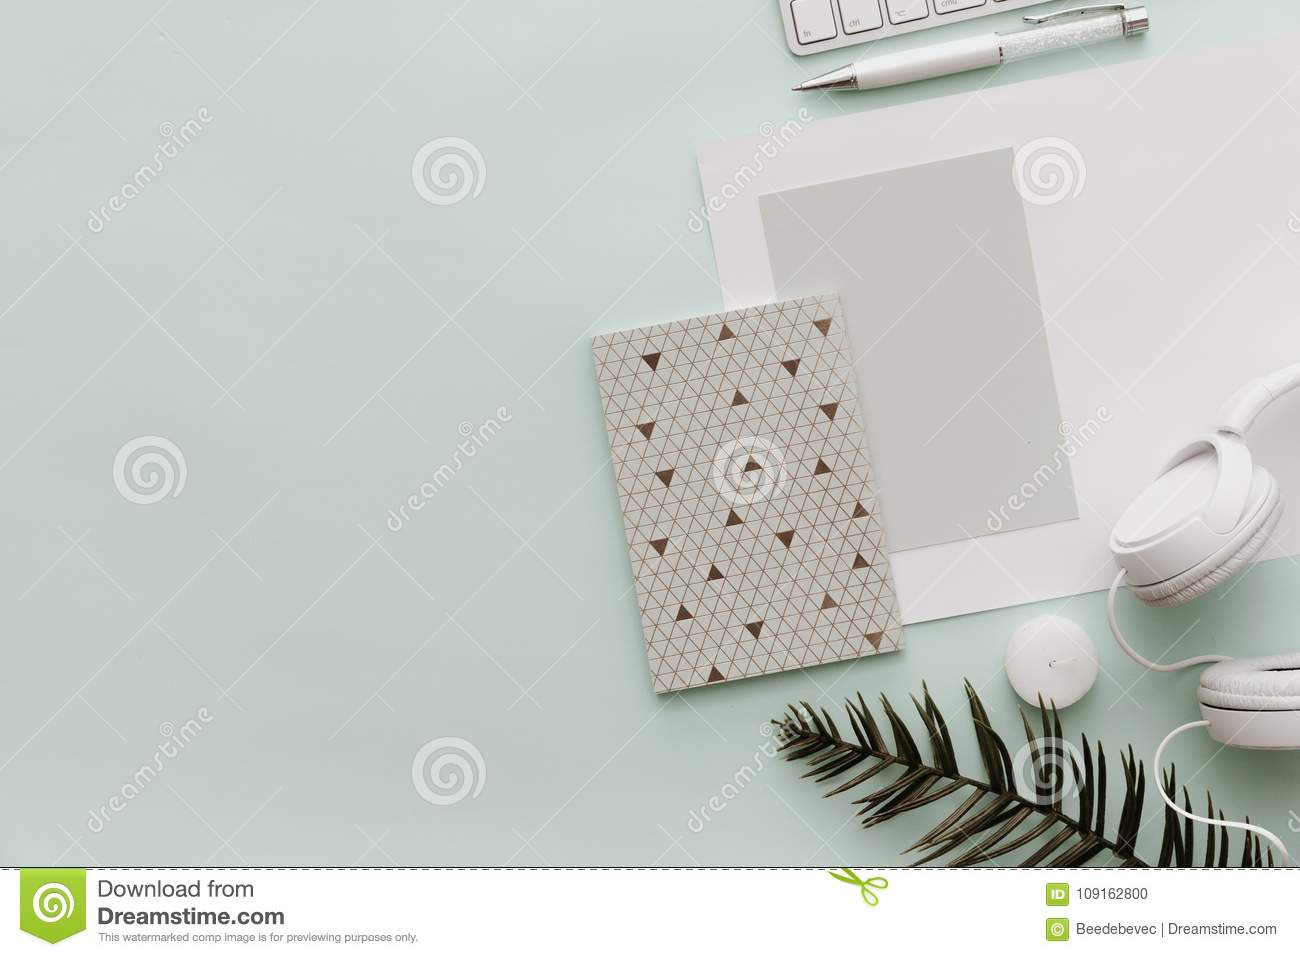 Minimalist Flat Lay Hipster Desktop Blogger Pastel Background With Notebook Stock Photo Image Of Items Corporate 109162800